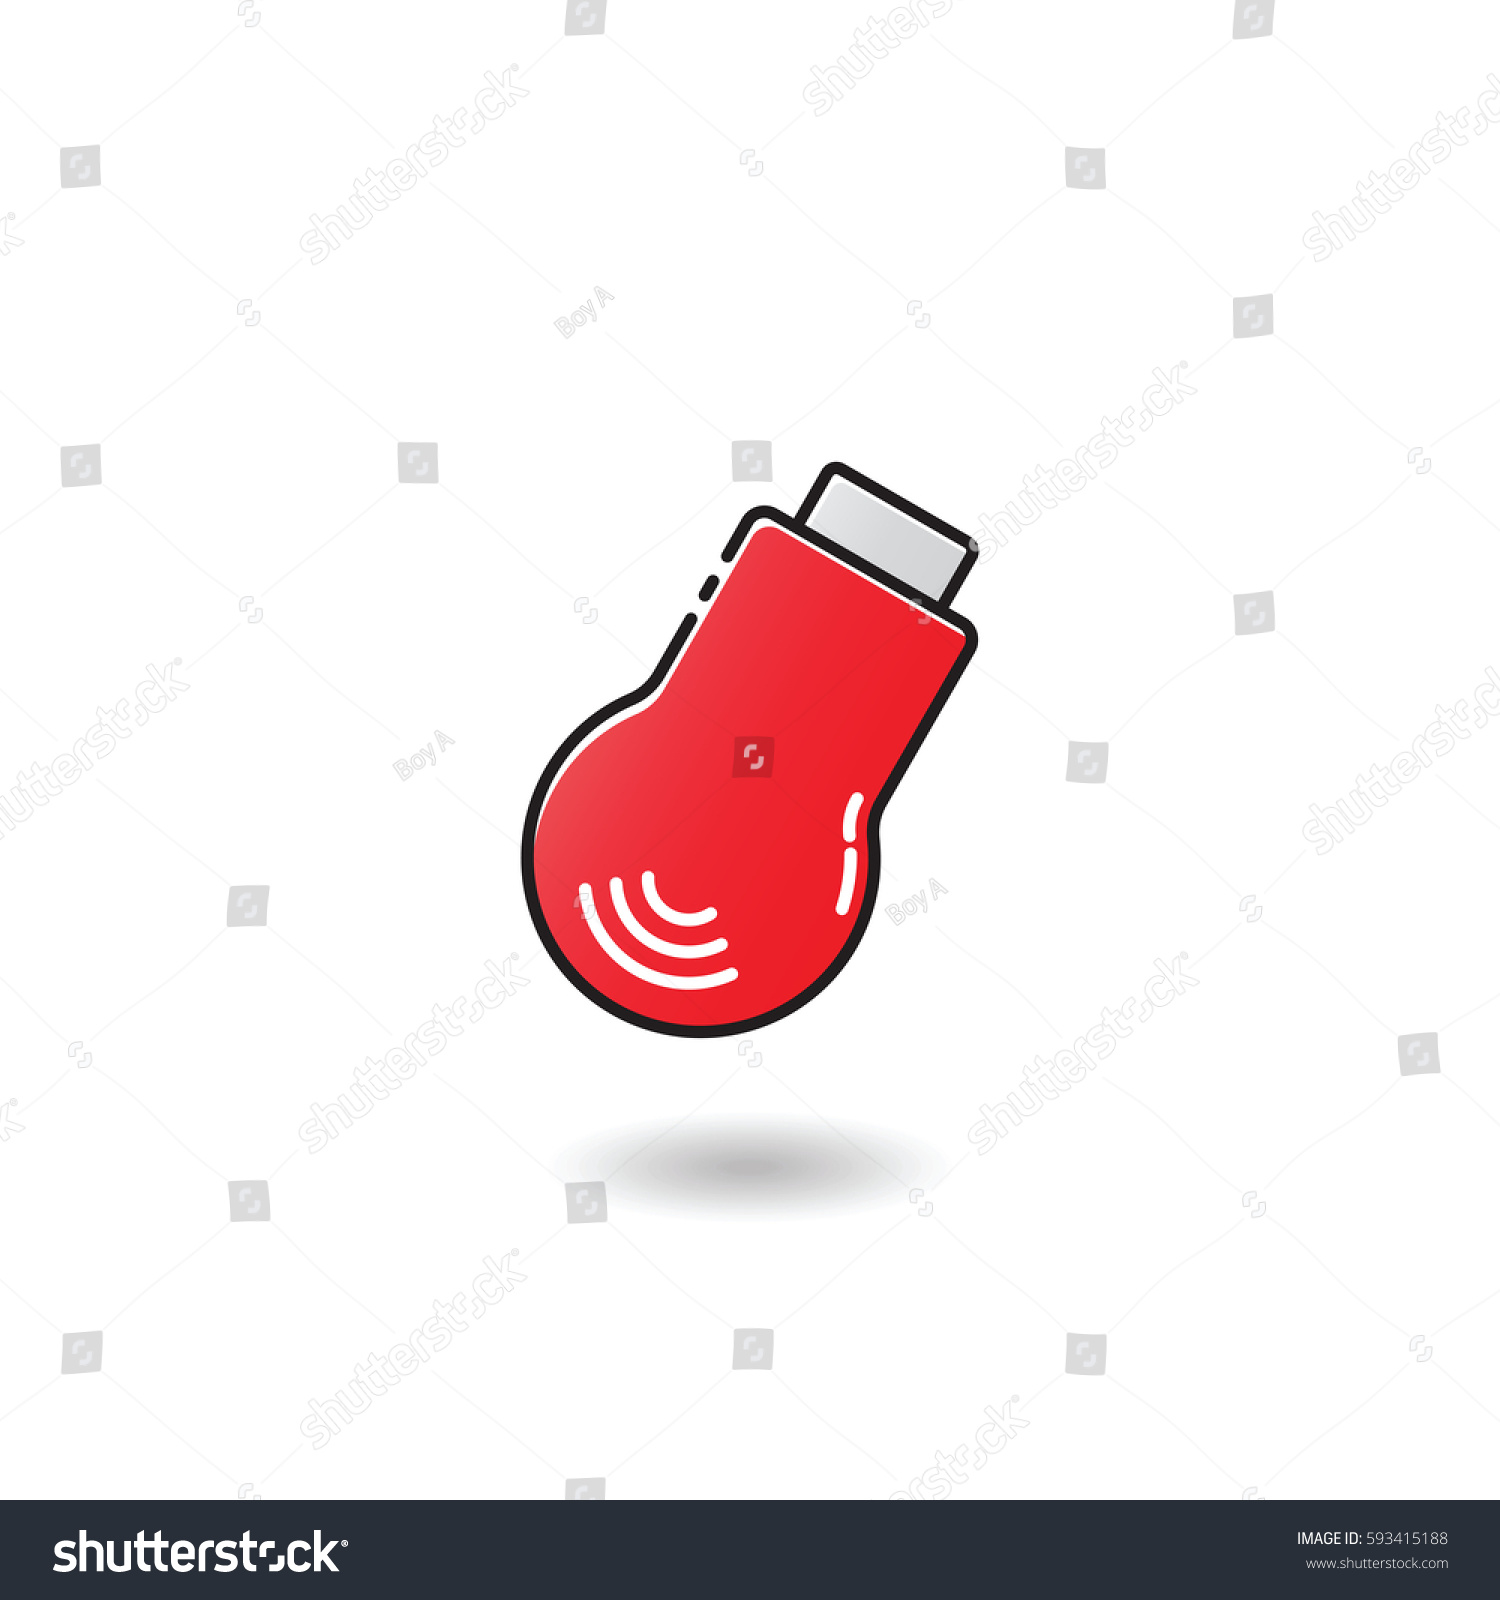 Outline Flash Tv Stick Icon Stock Vector Royalty Free 593415188